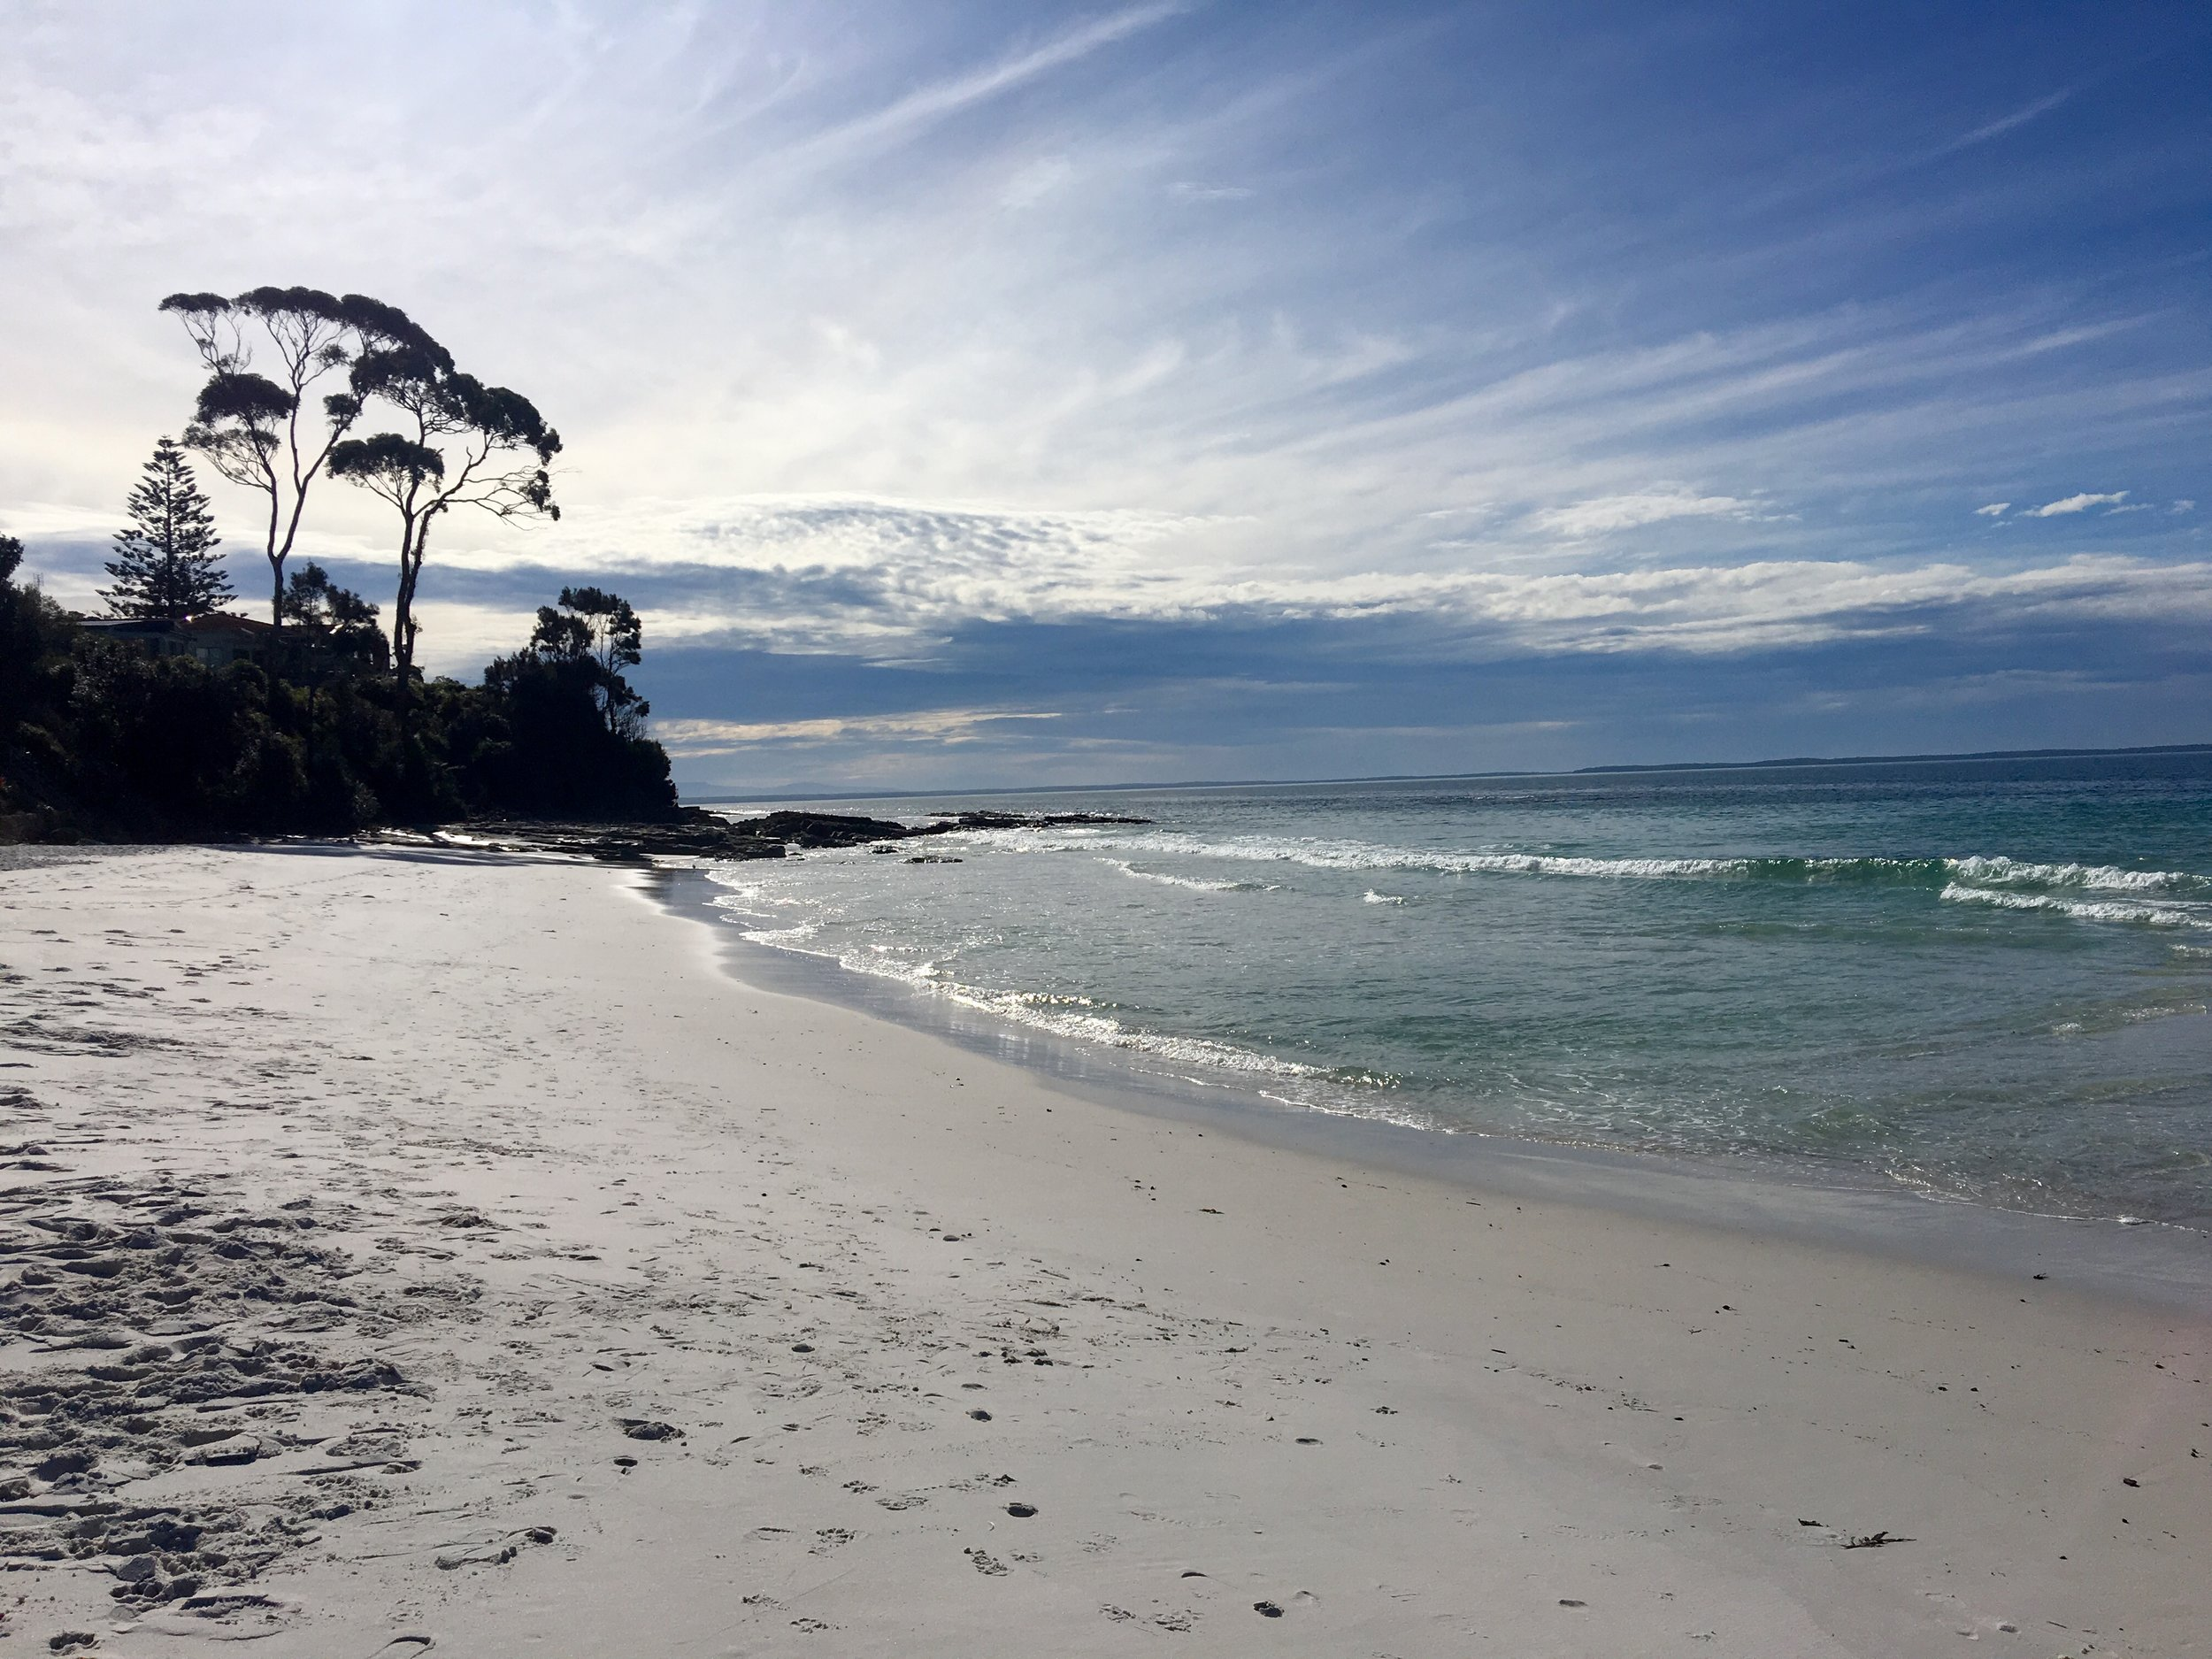 Hyams beach, New South Wales | Just an hour south of Gerringong. Perfect place to spend a day!